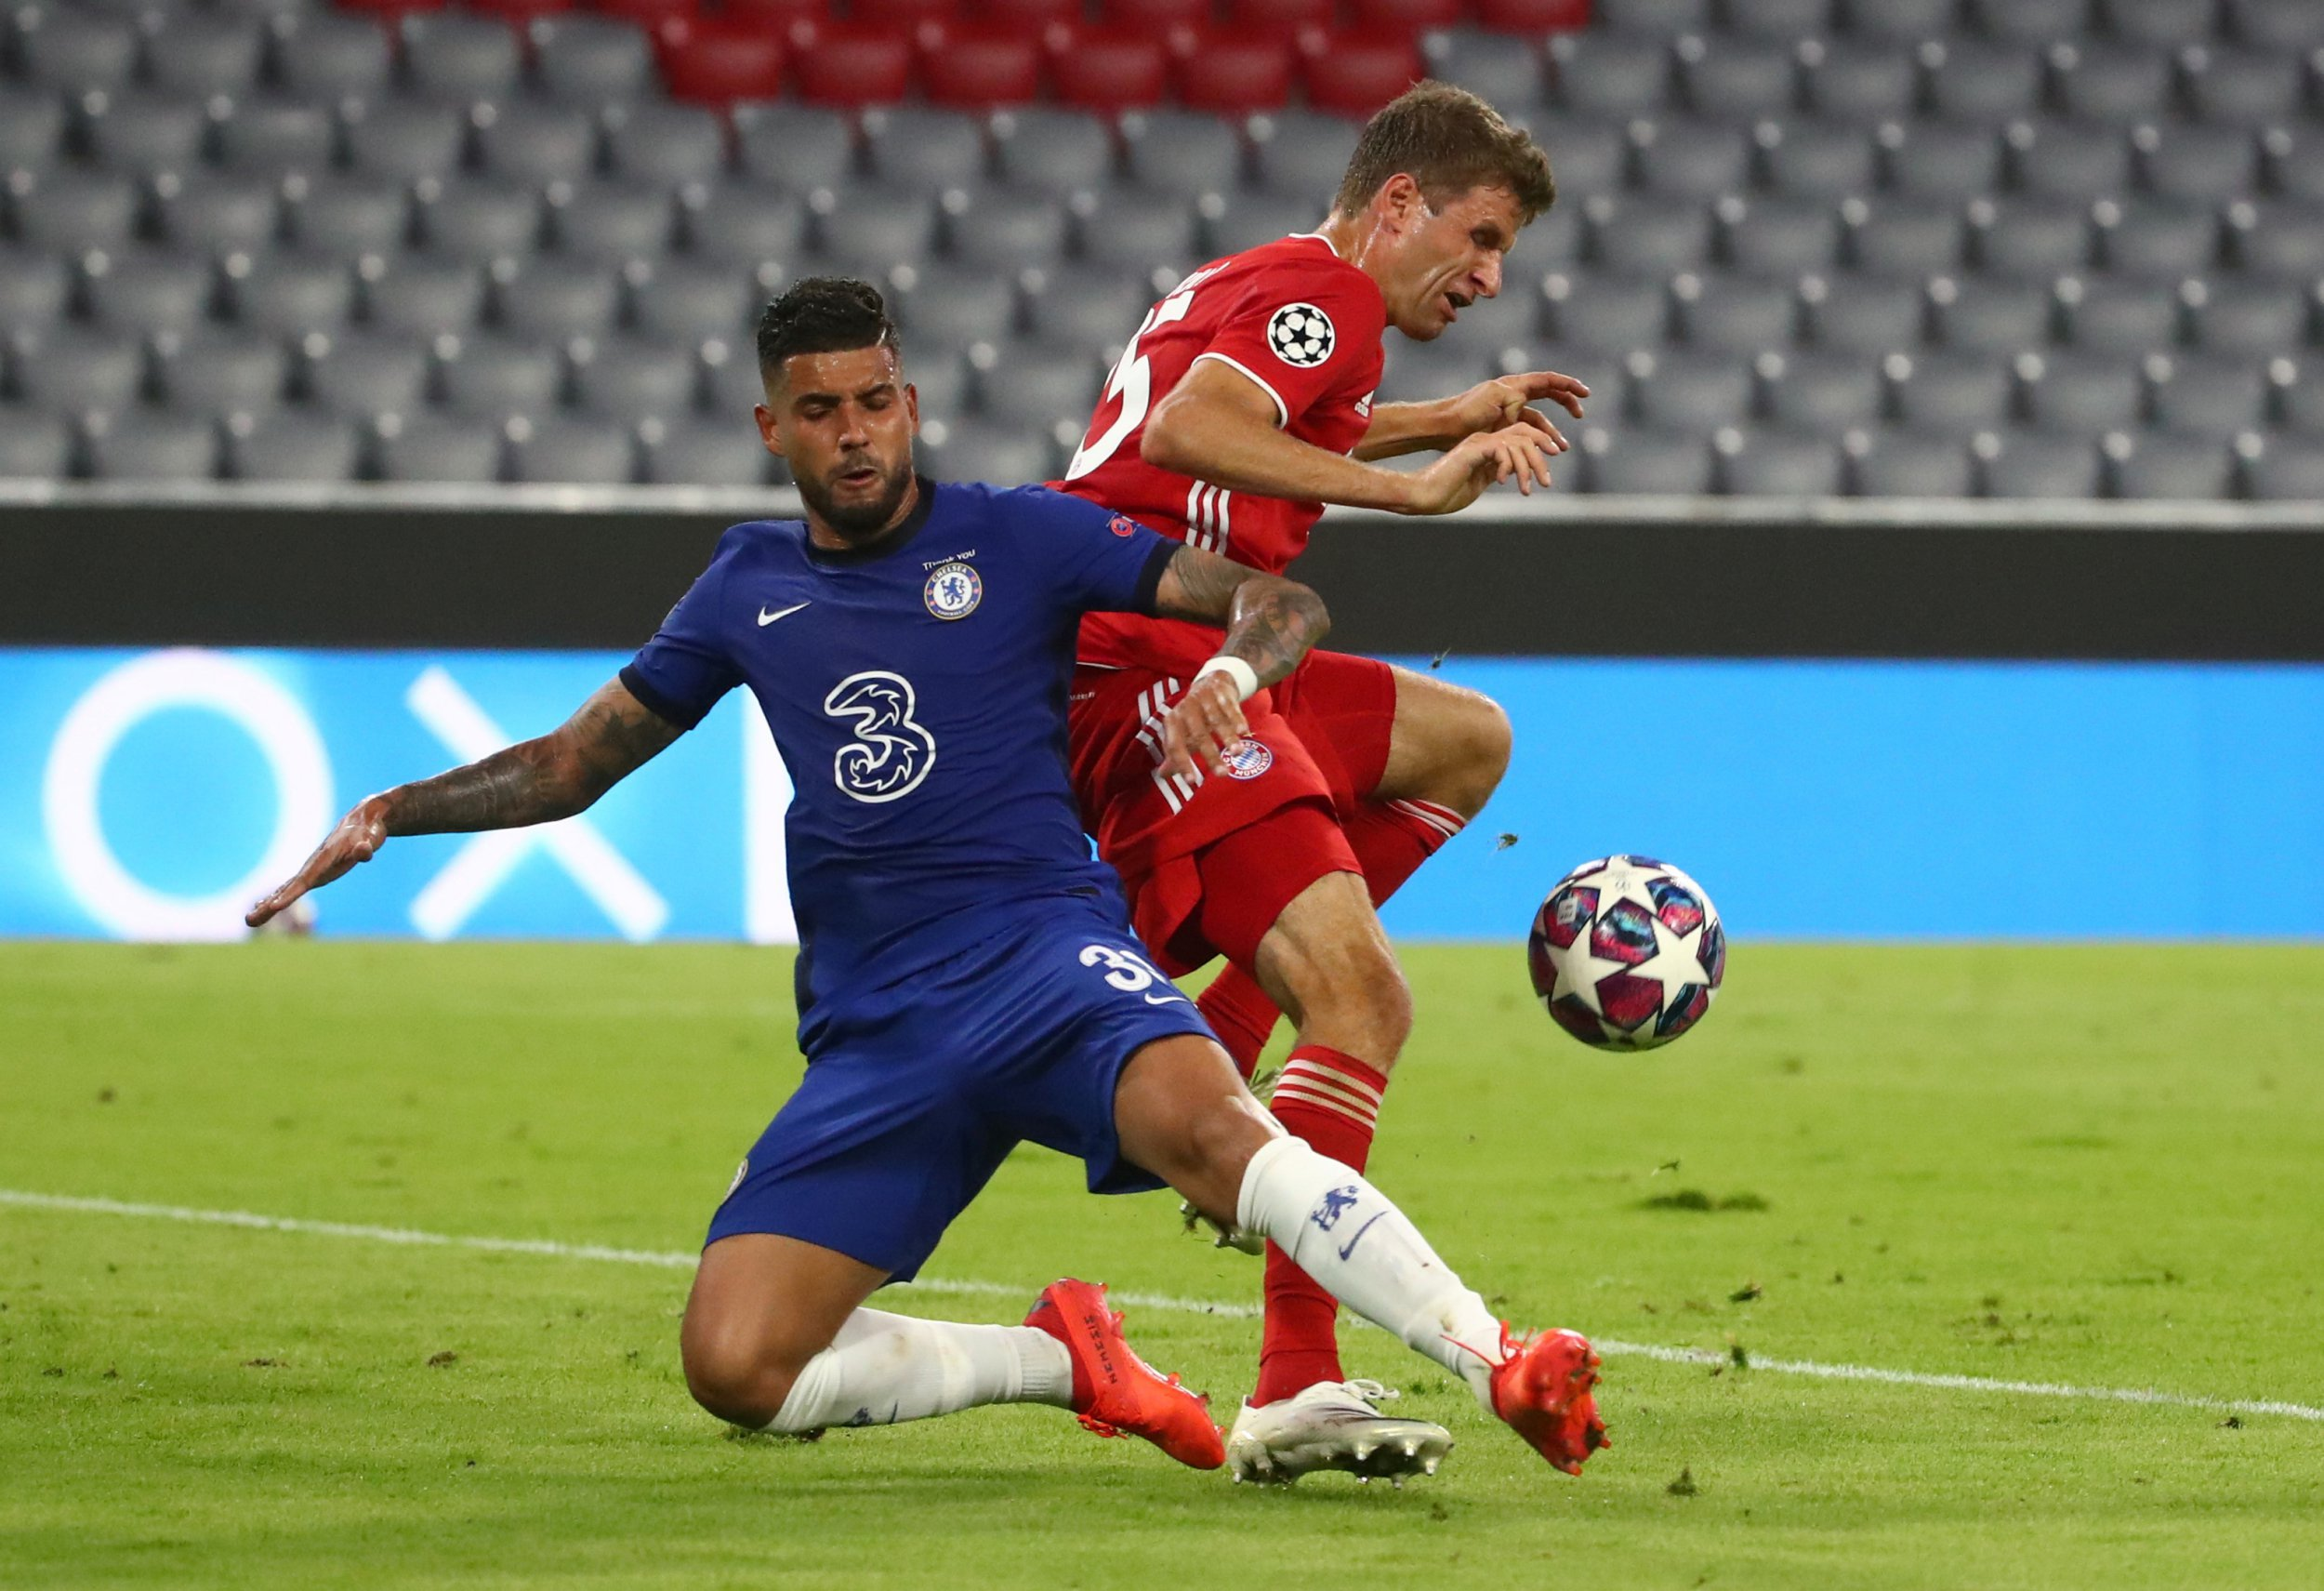 Emerson Palmieri could be on his way to Juvenus on loan